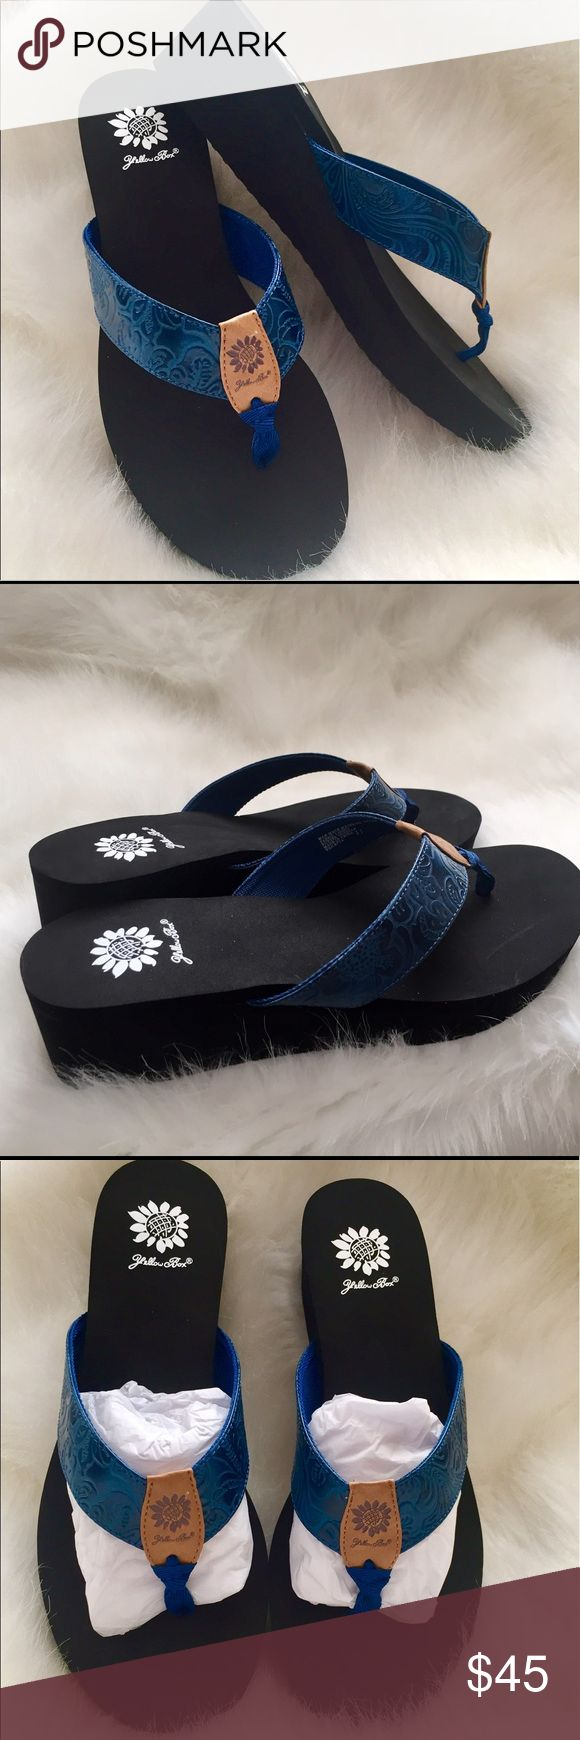 Yellow Box Violetta Navy Wedge Flip Flop Sandal Wake up your wardrobe with these Violetta sandals!! They have a fun wedge heel. Yellow Box Shoes Sandals